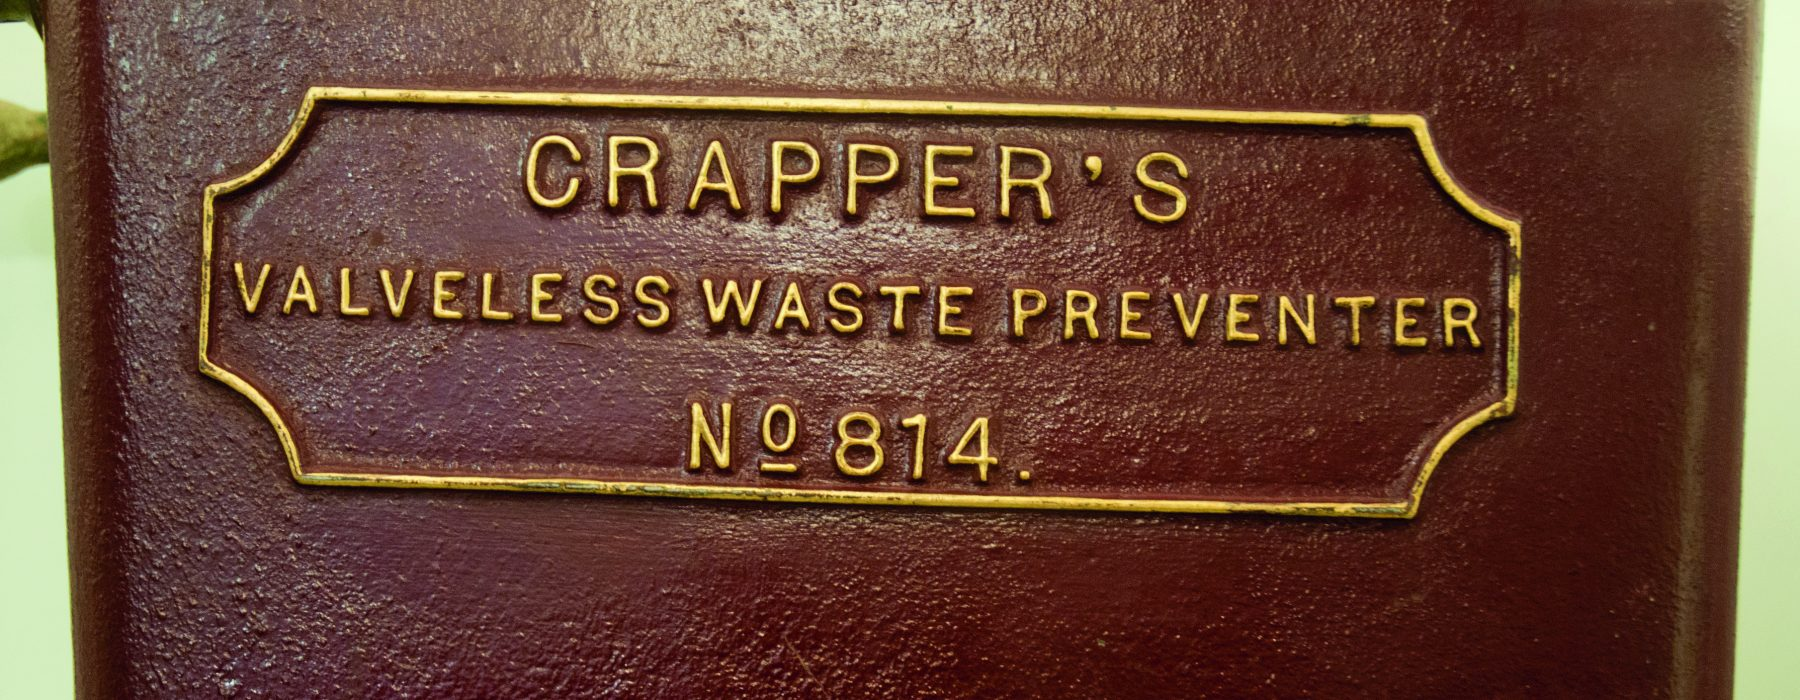 Picture of a Crapper